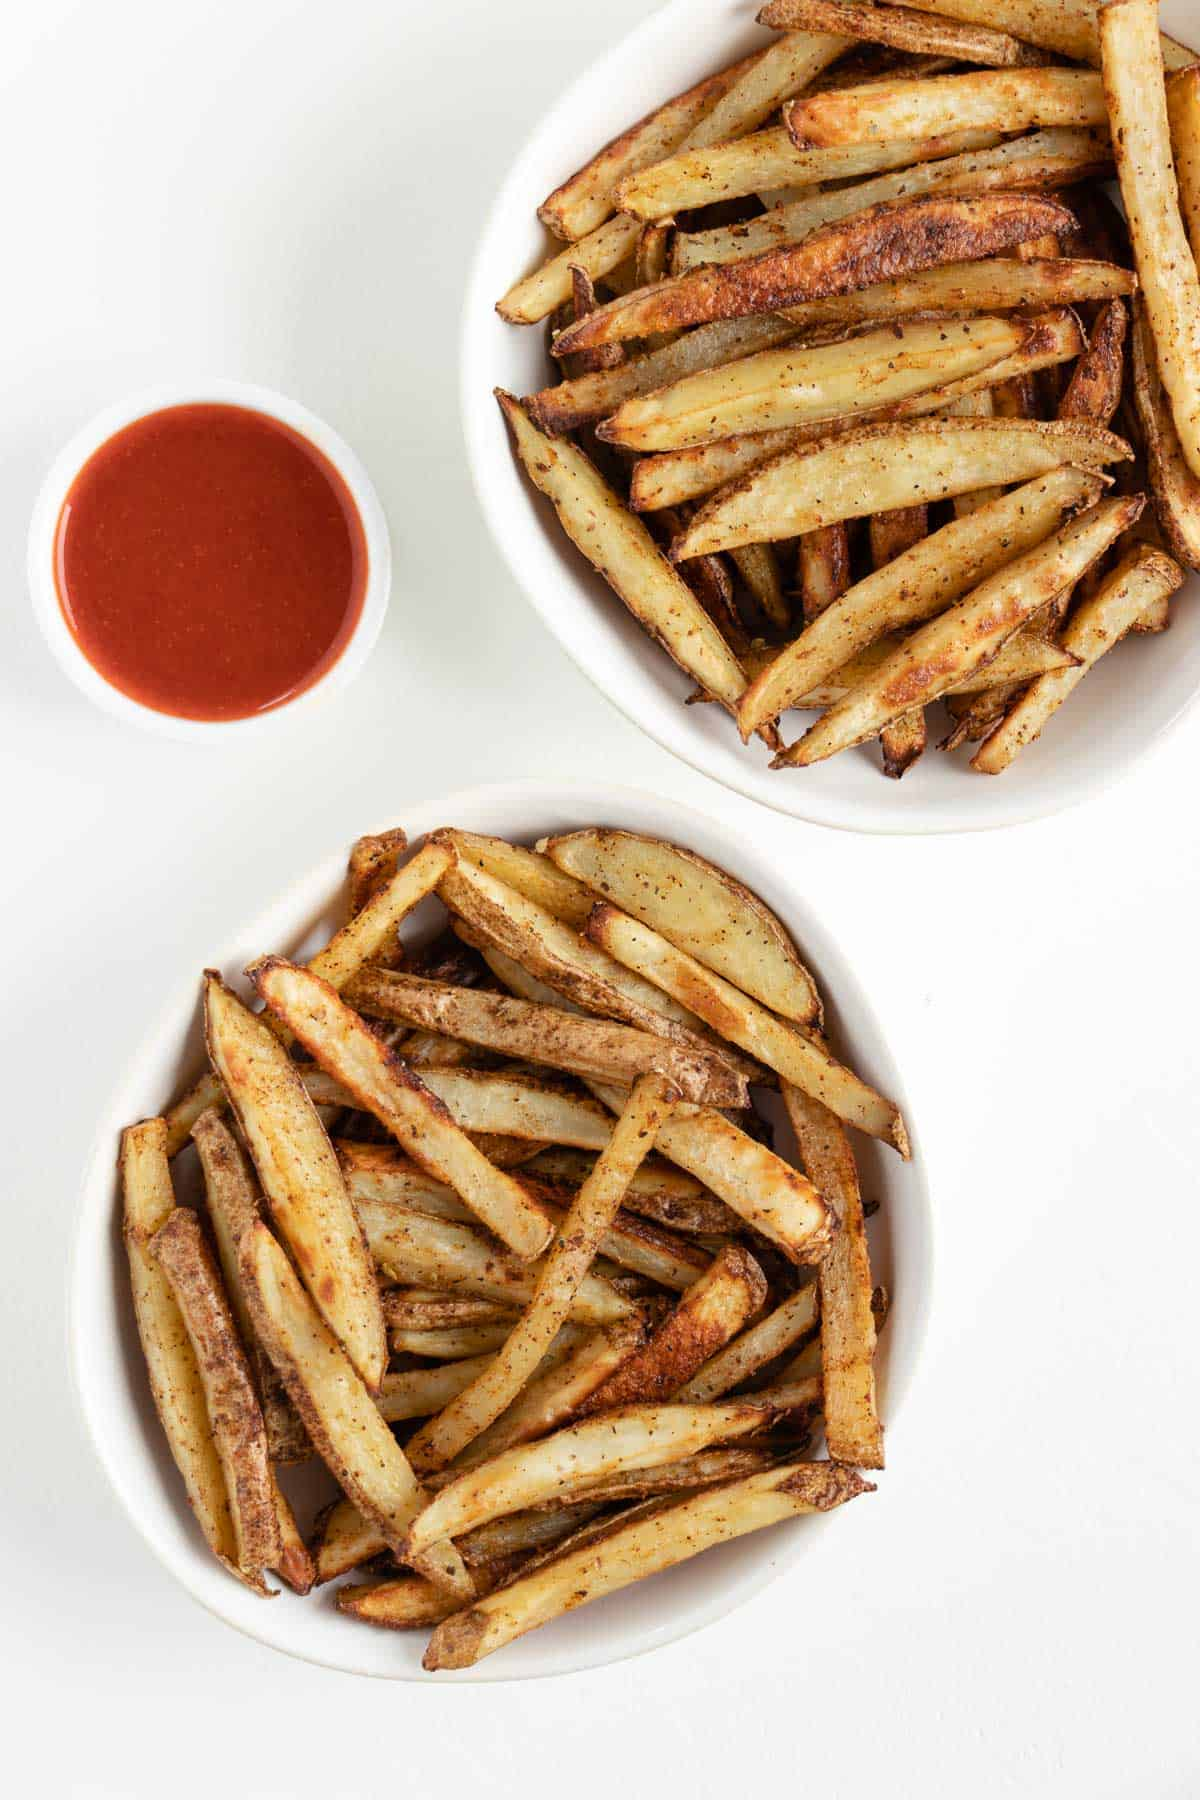 two white bowls filled with crispy baked french fries beside a bowl of ketchup